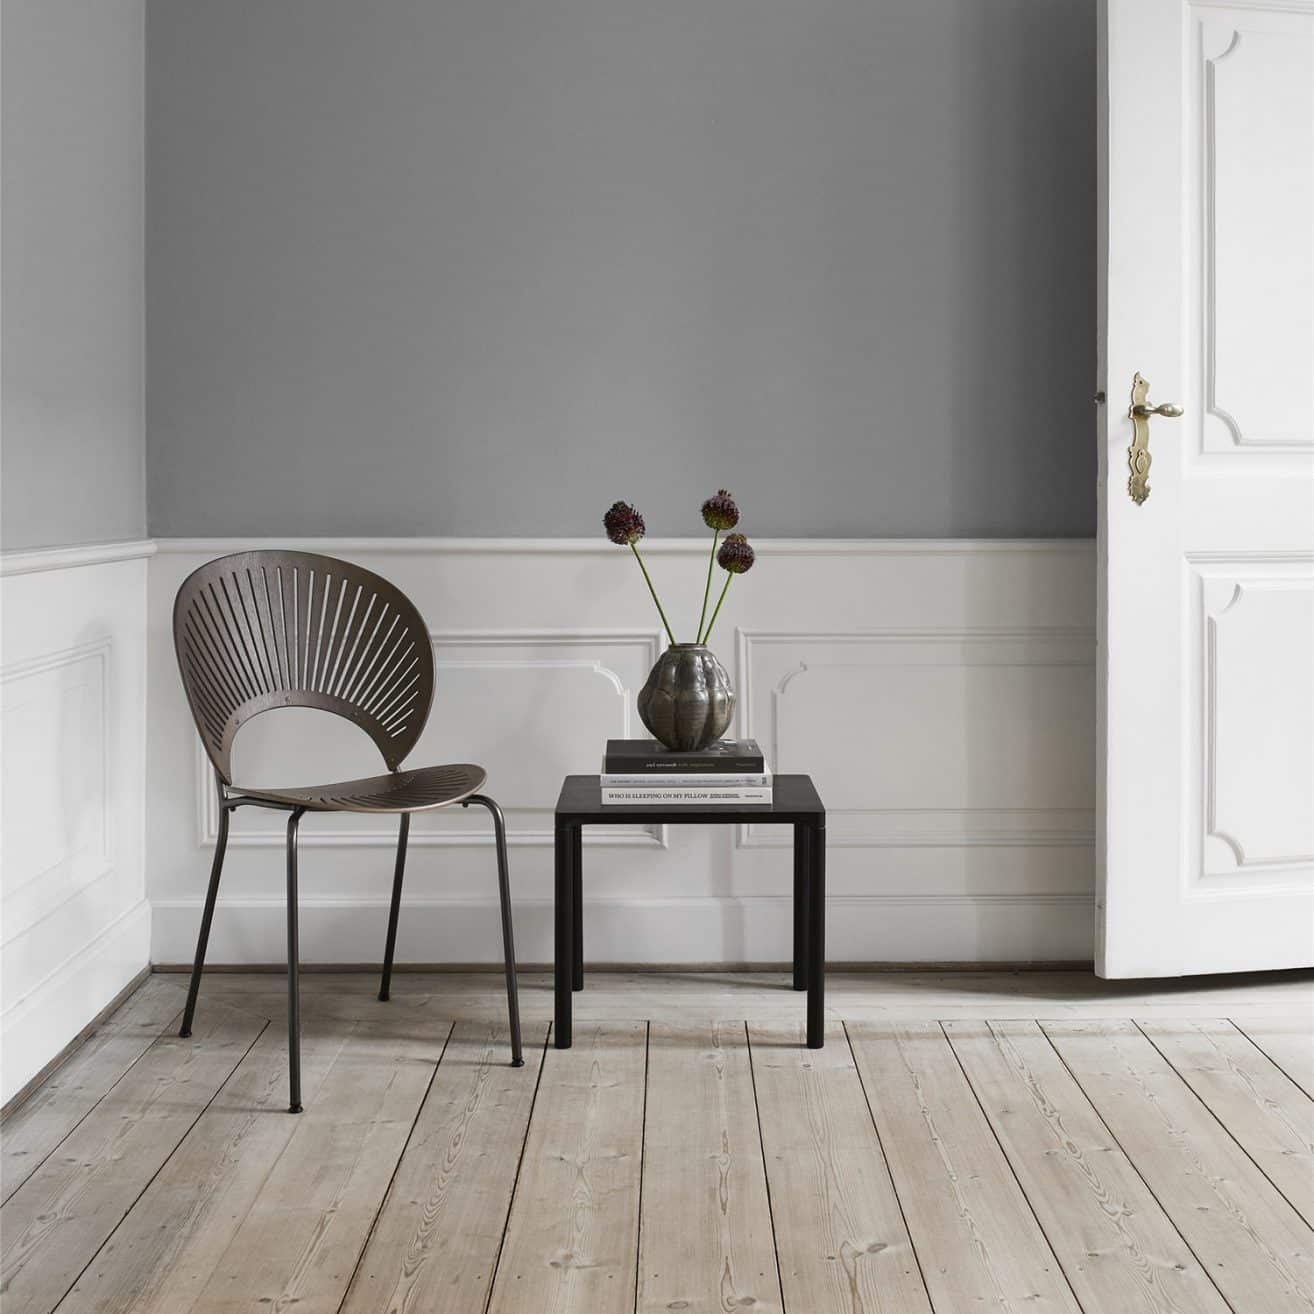 Nanna Ditzel's iconic Trinidad chair – Fredericia